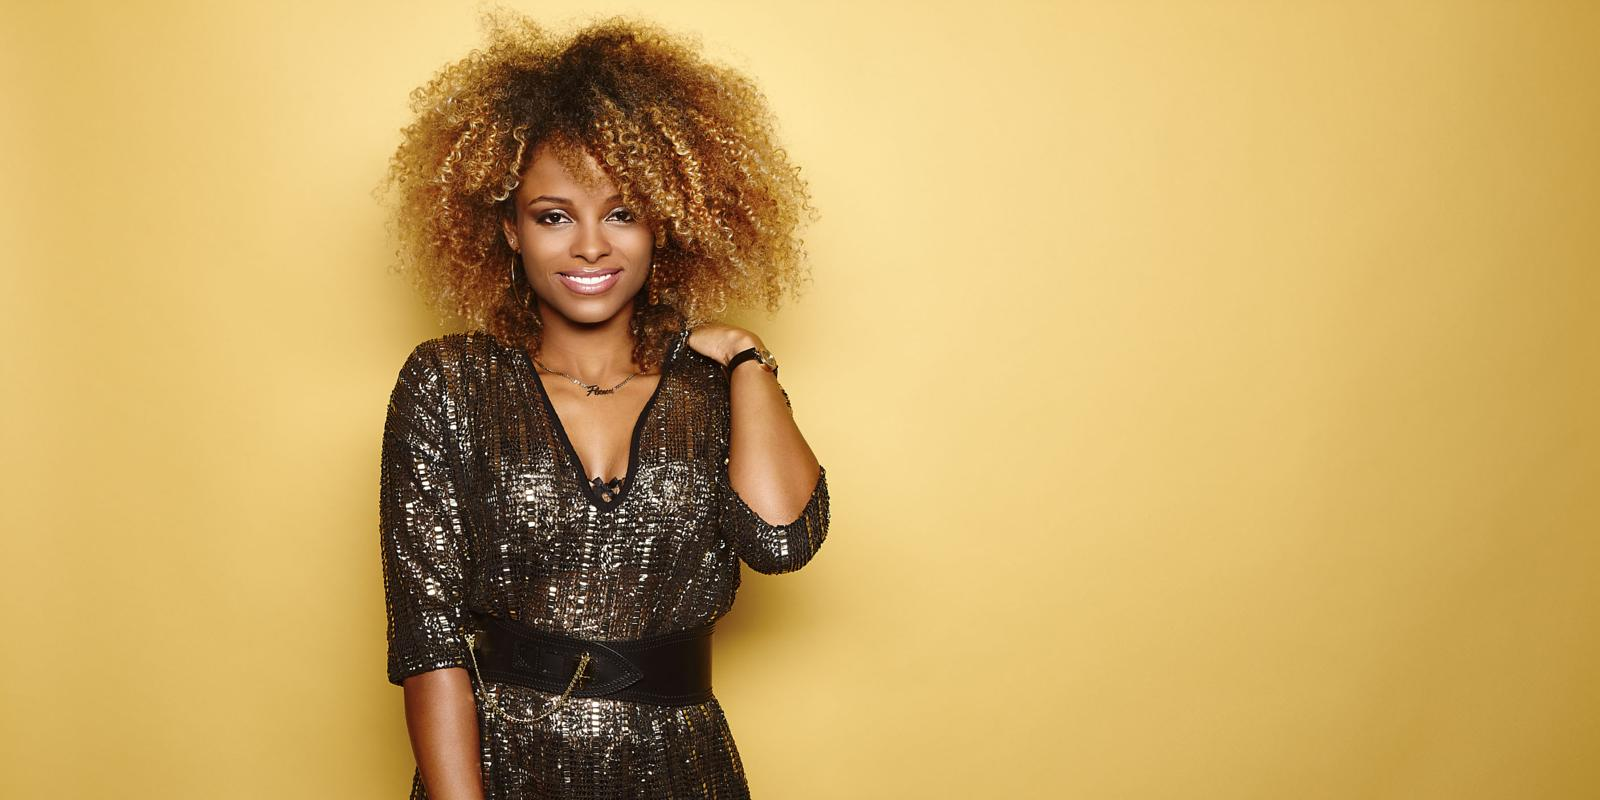 emmie-model naked 1 The X Factor, Top 12: Fleur East.